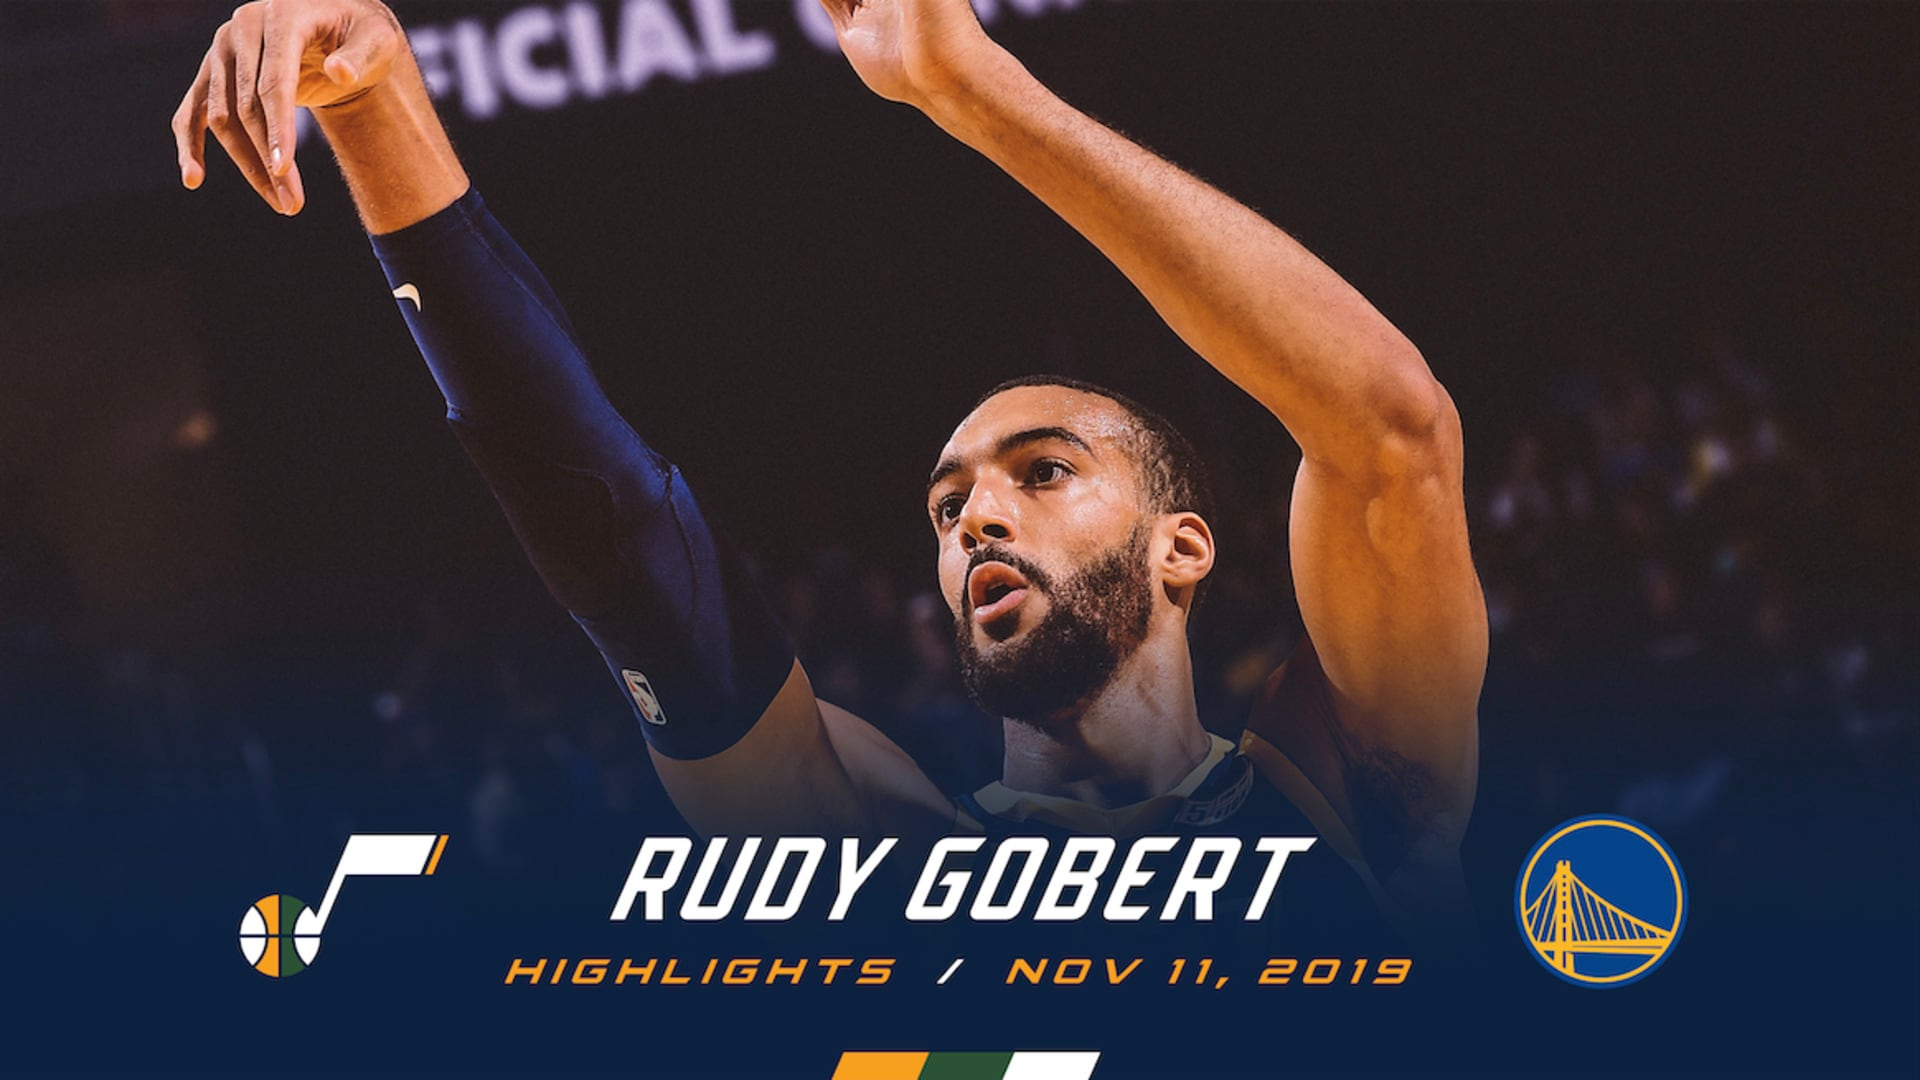 Highlights: Rudy Gobert - 25 points, 14 rebounds